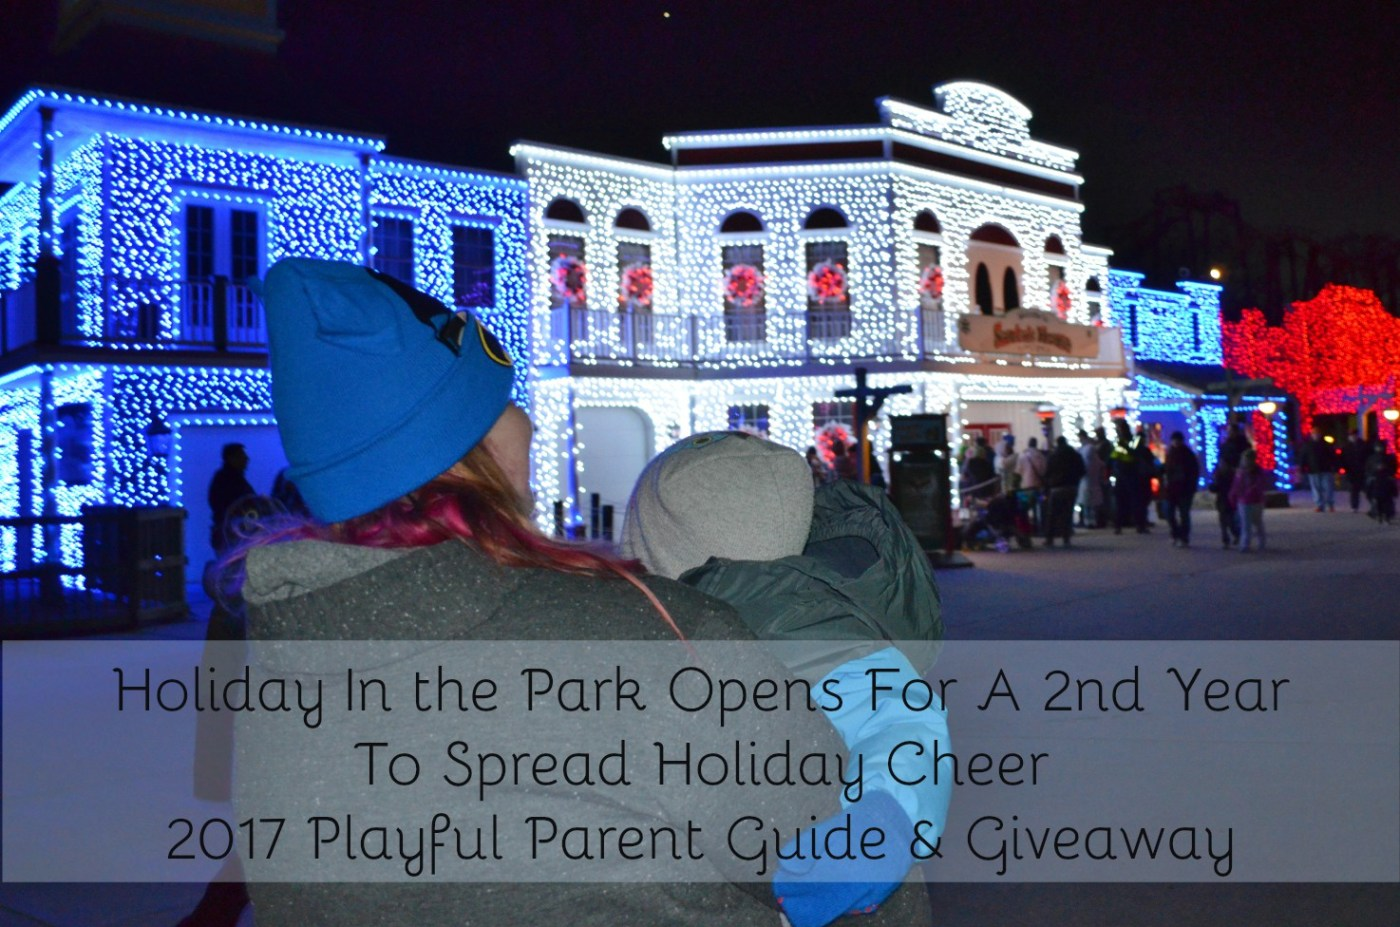 HOLIDAY IN THE PARK OPENS FOR A 2ND YEAR TO SPREAD HOLIDAY CHEER ...